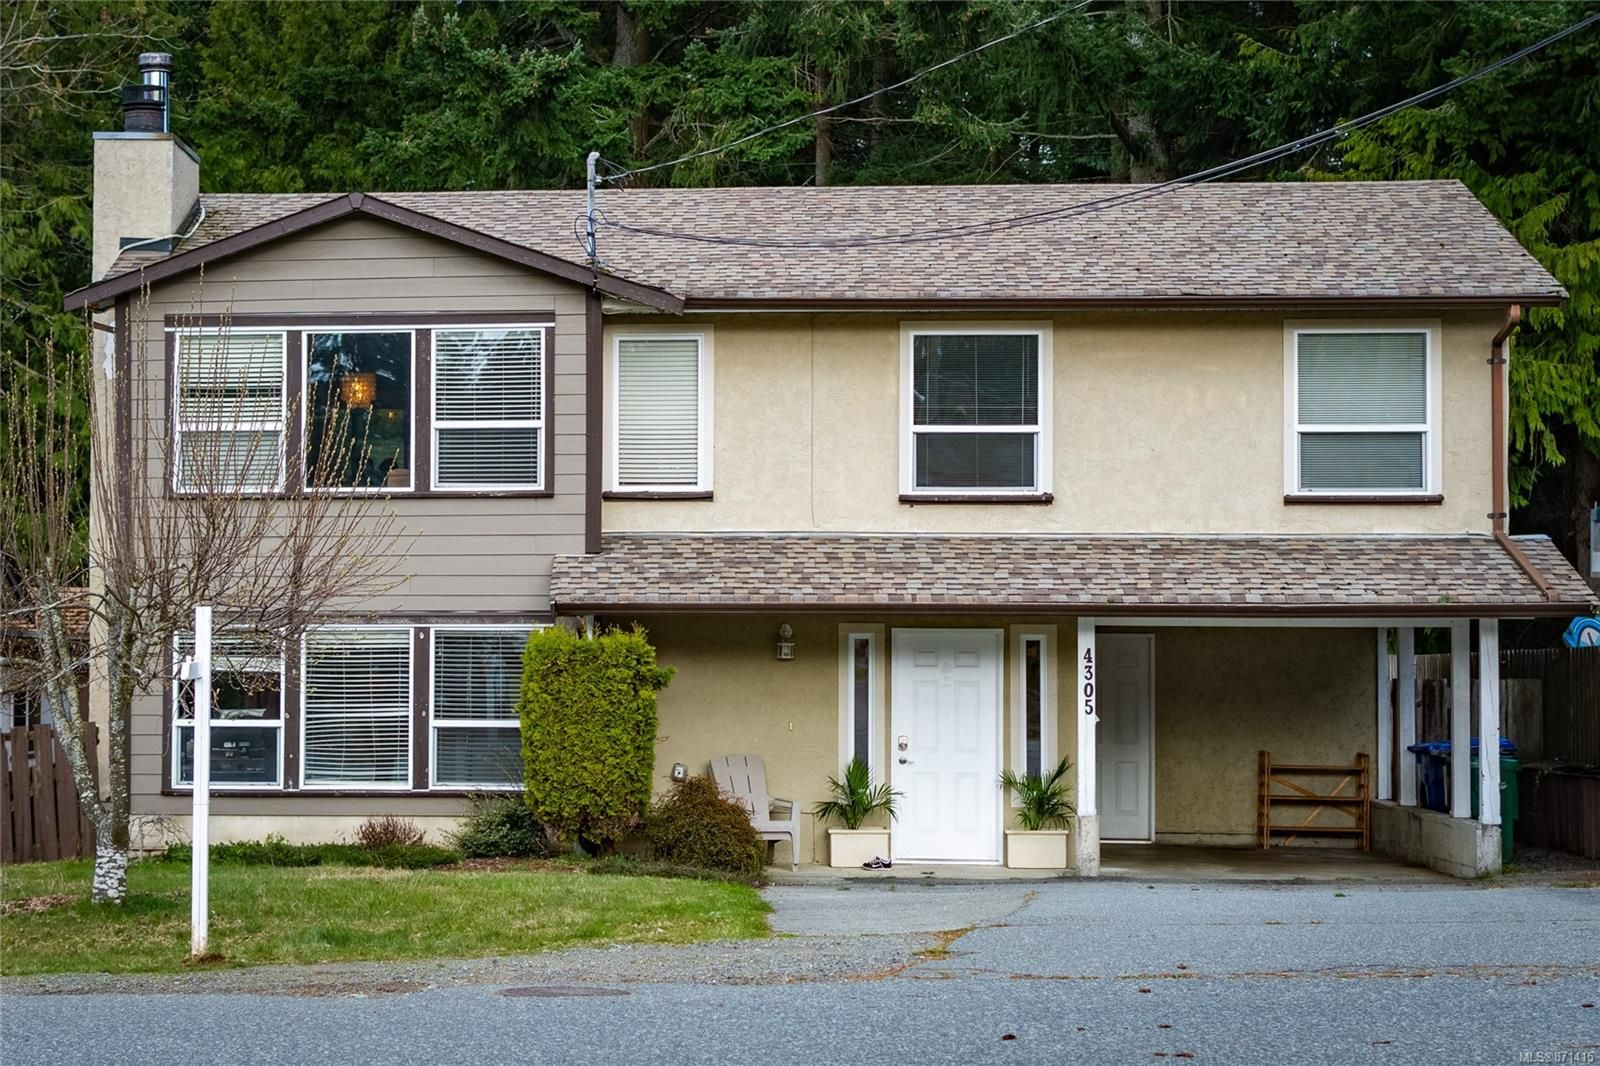 Main Photo: 4305 Butternut Dr in : Na Uplands House for sale (Nanaimo)  : MLS®# 871415